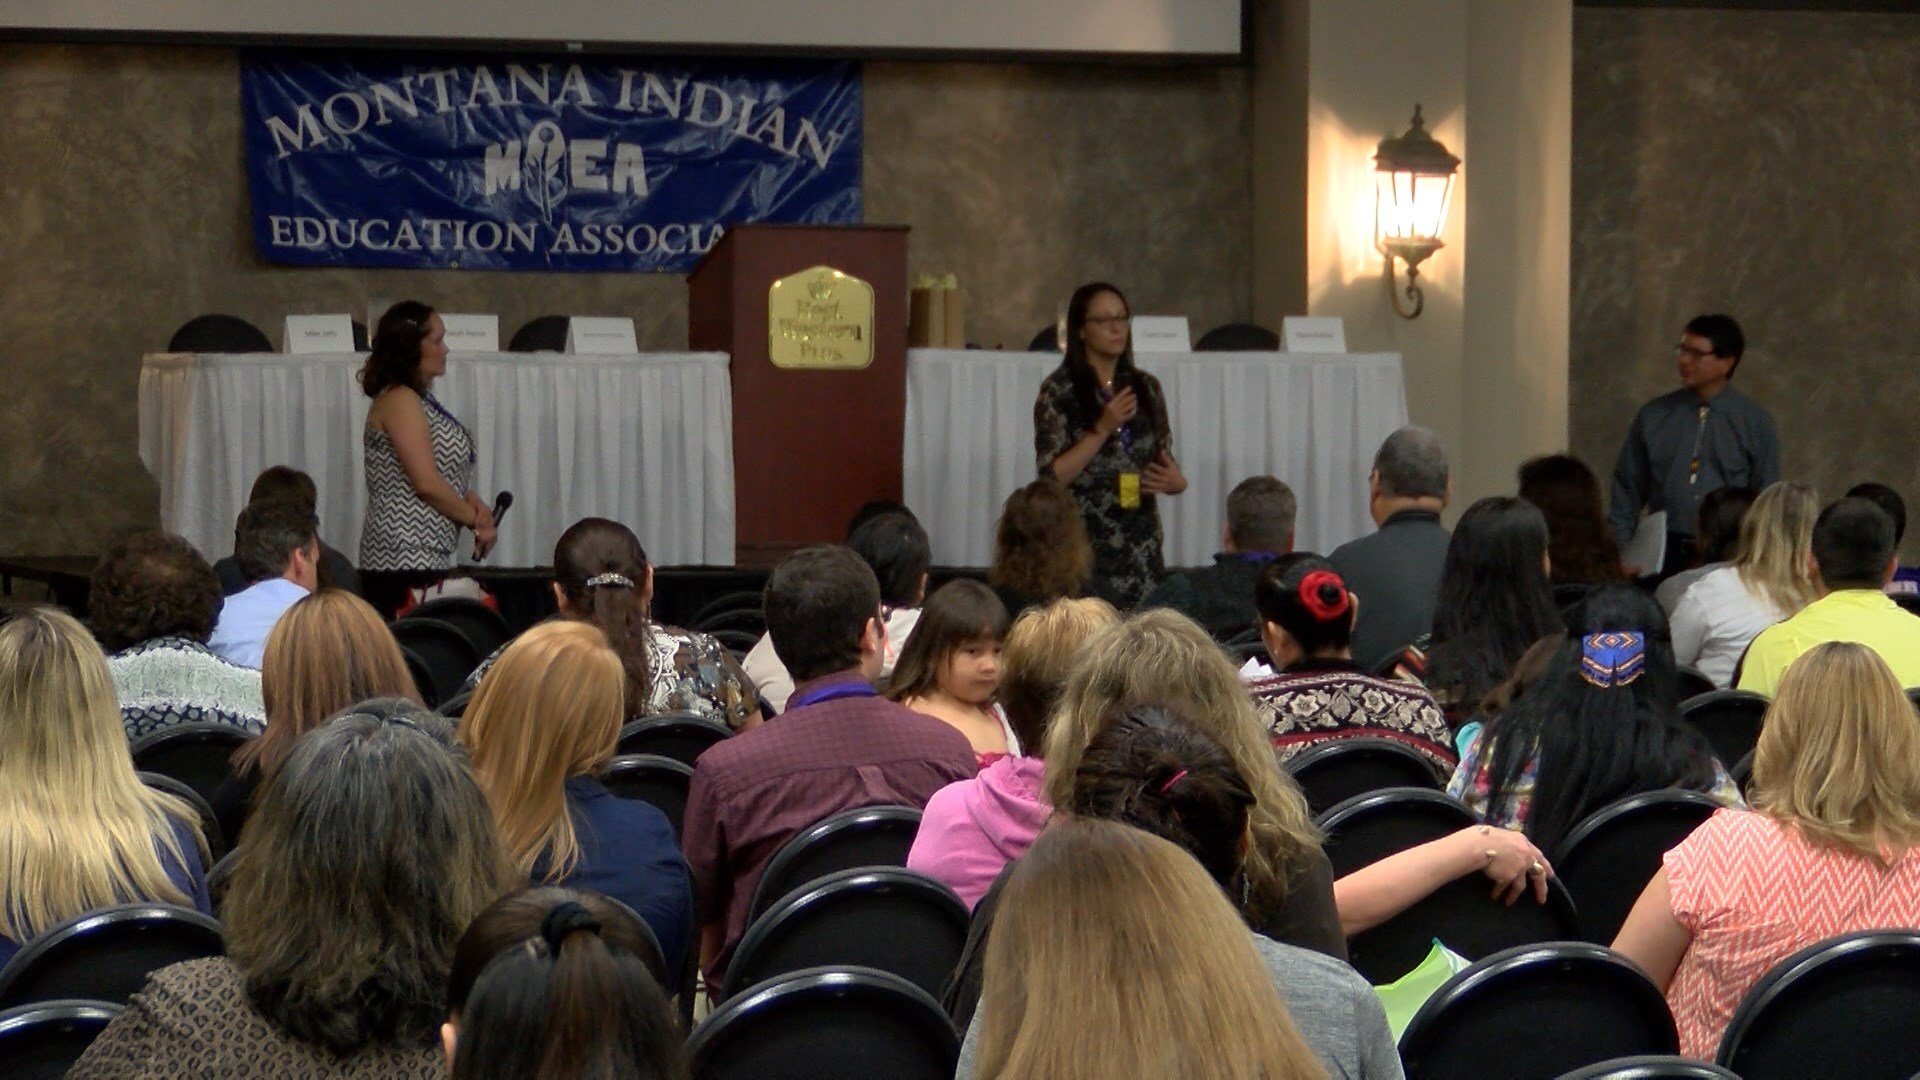 2016 Montana Indian Education Association Conference